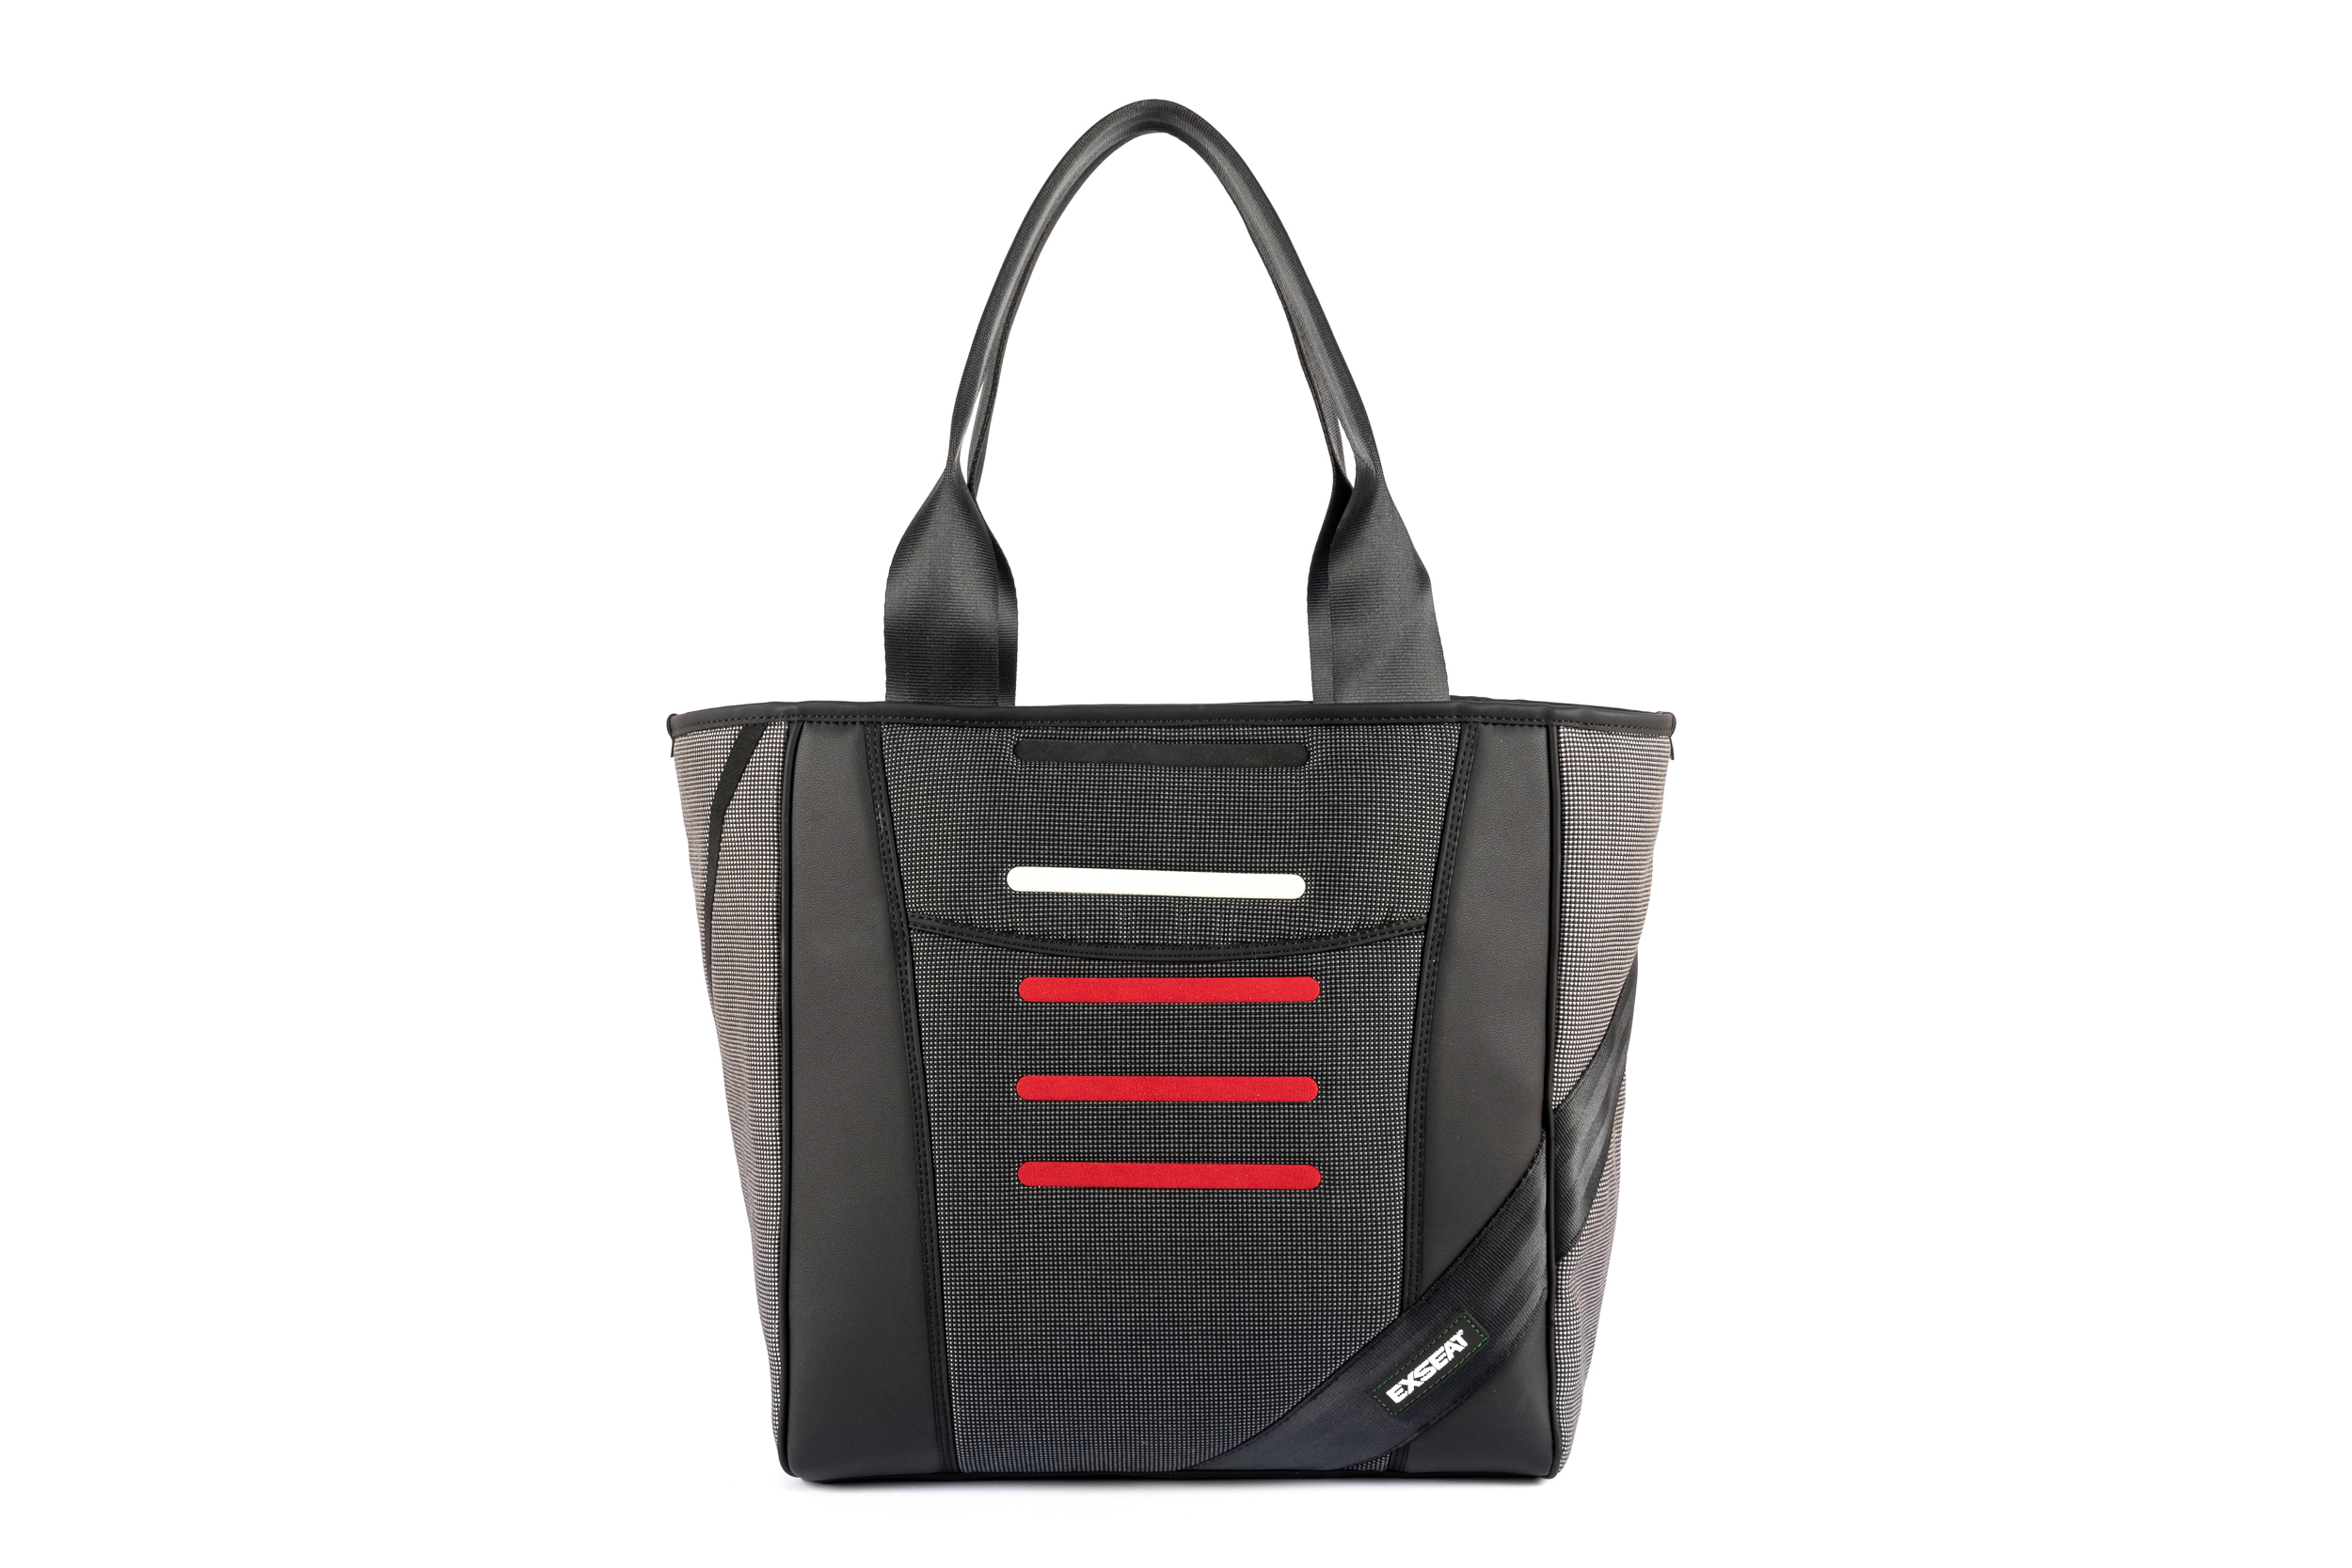 borsa eco-friendly shopper daytona